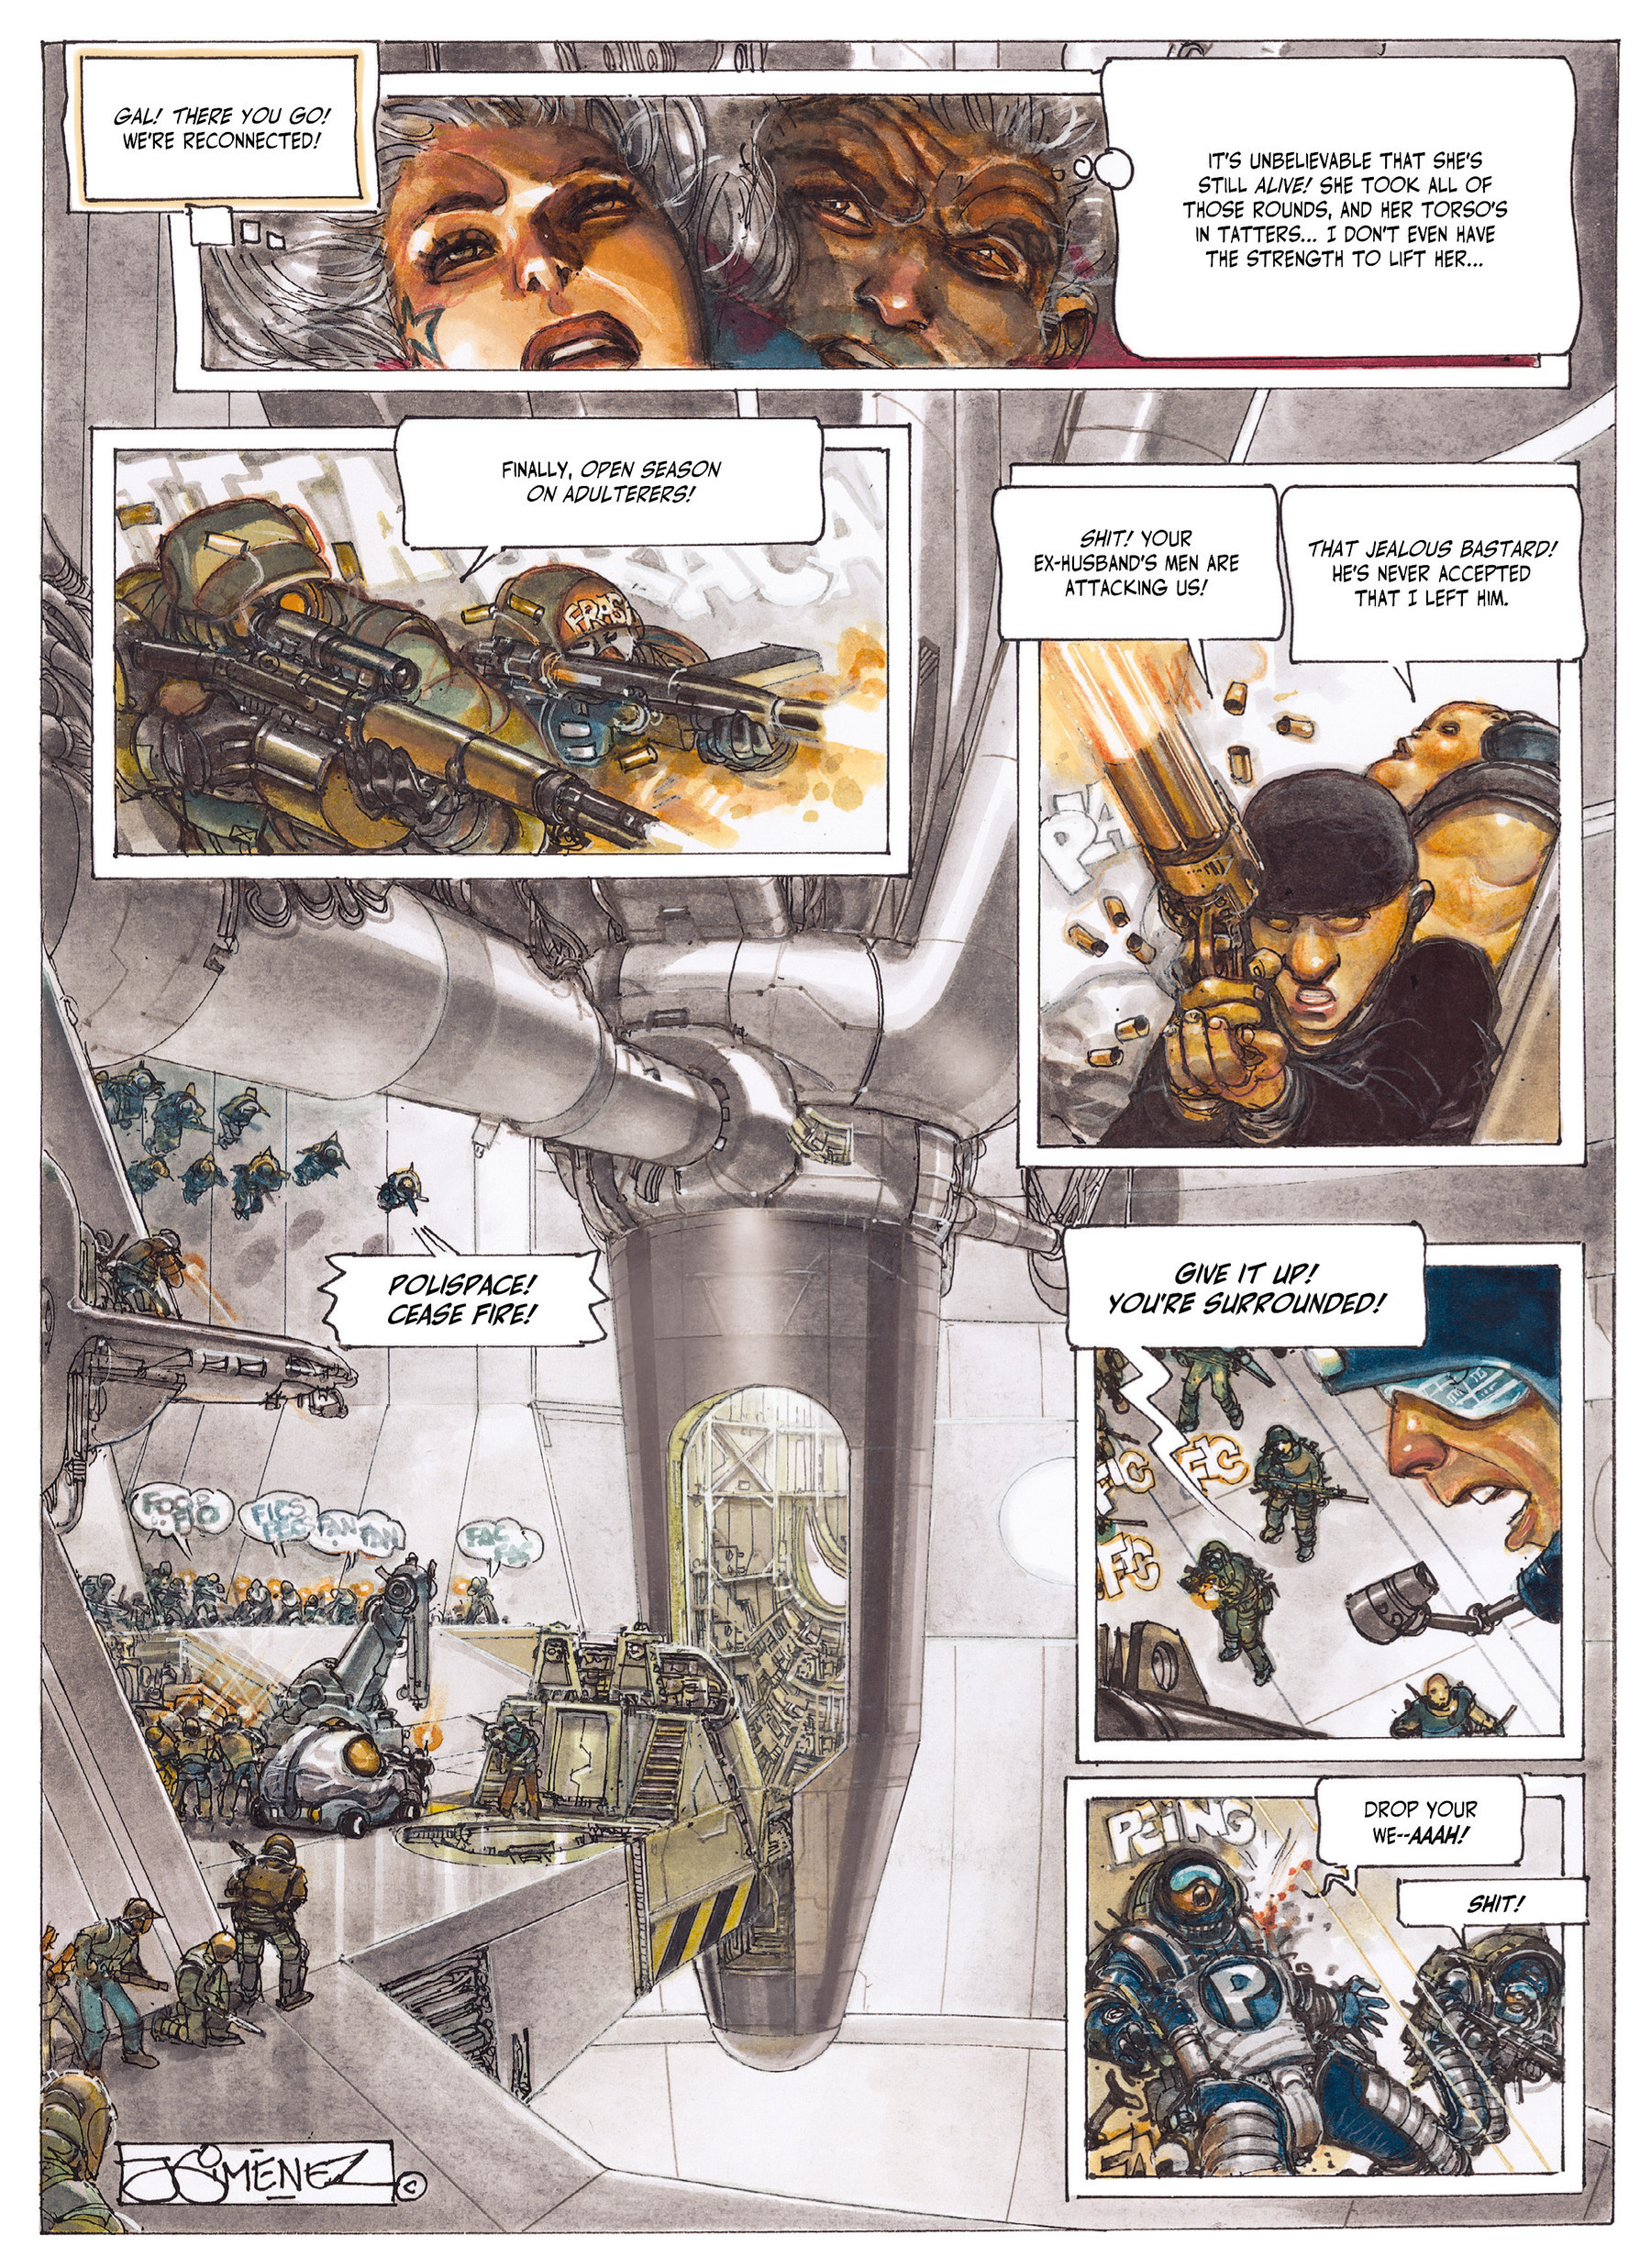 Read online The Fourth Power comic -  Issue #2 - 54